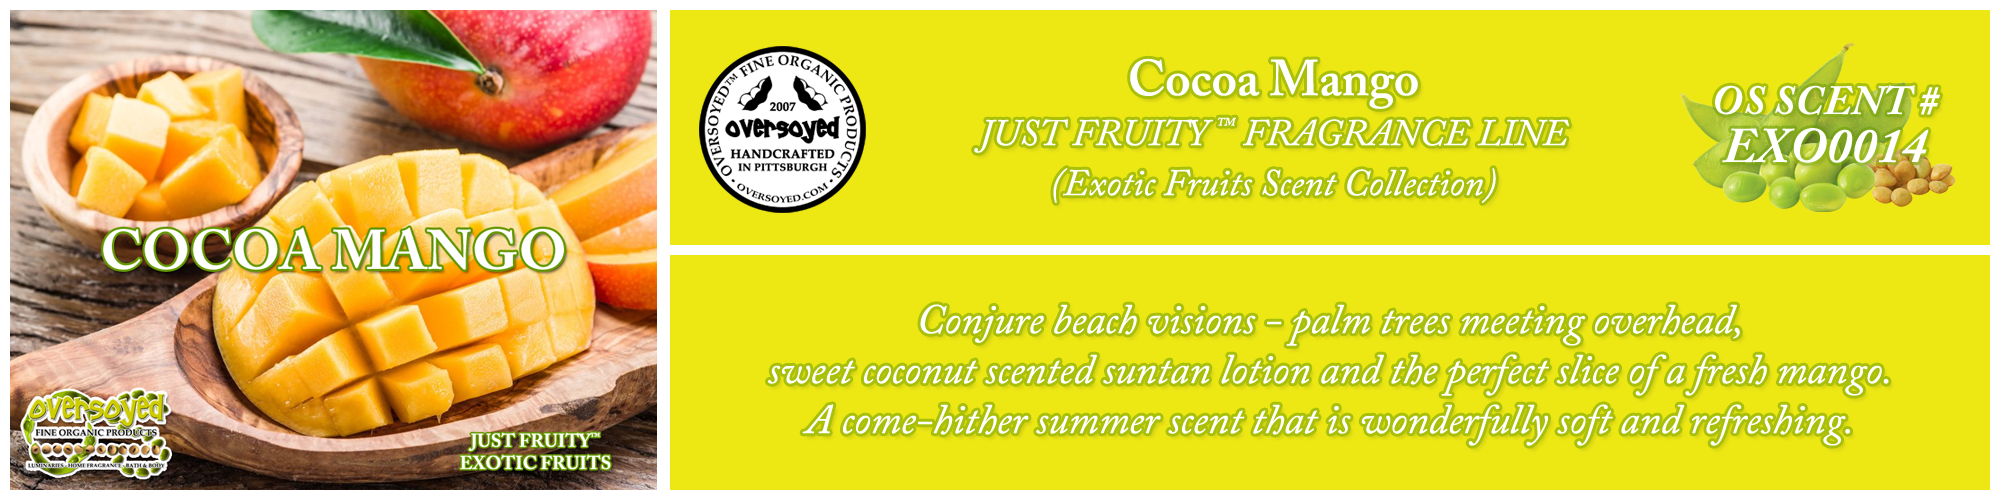 Cocoa Mango Handcrafted Products Collection